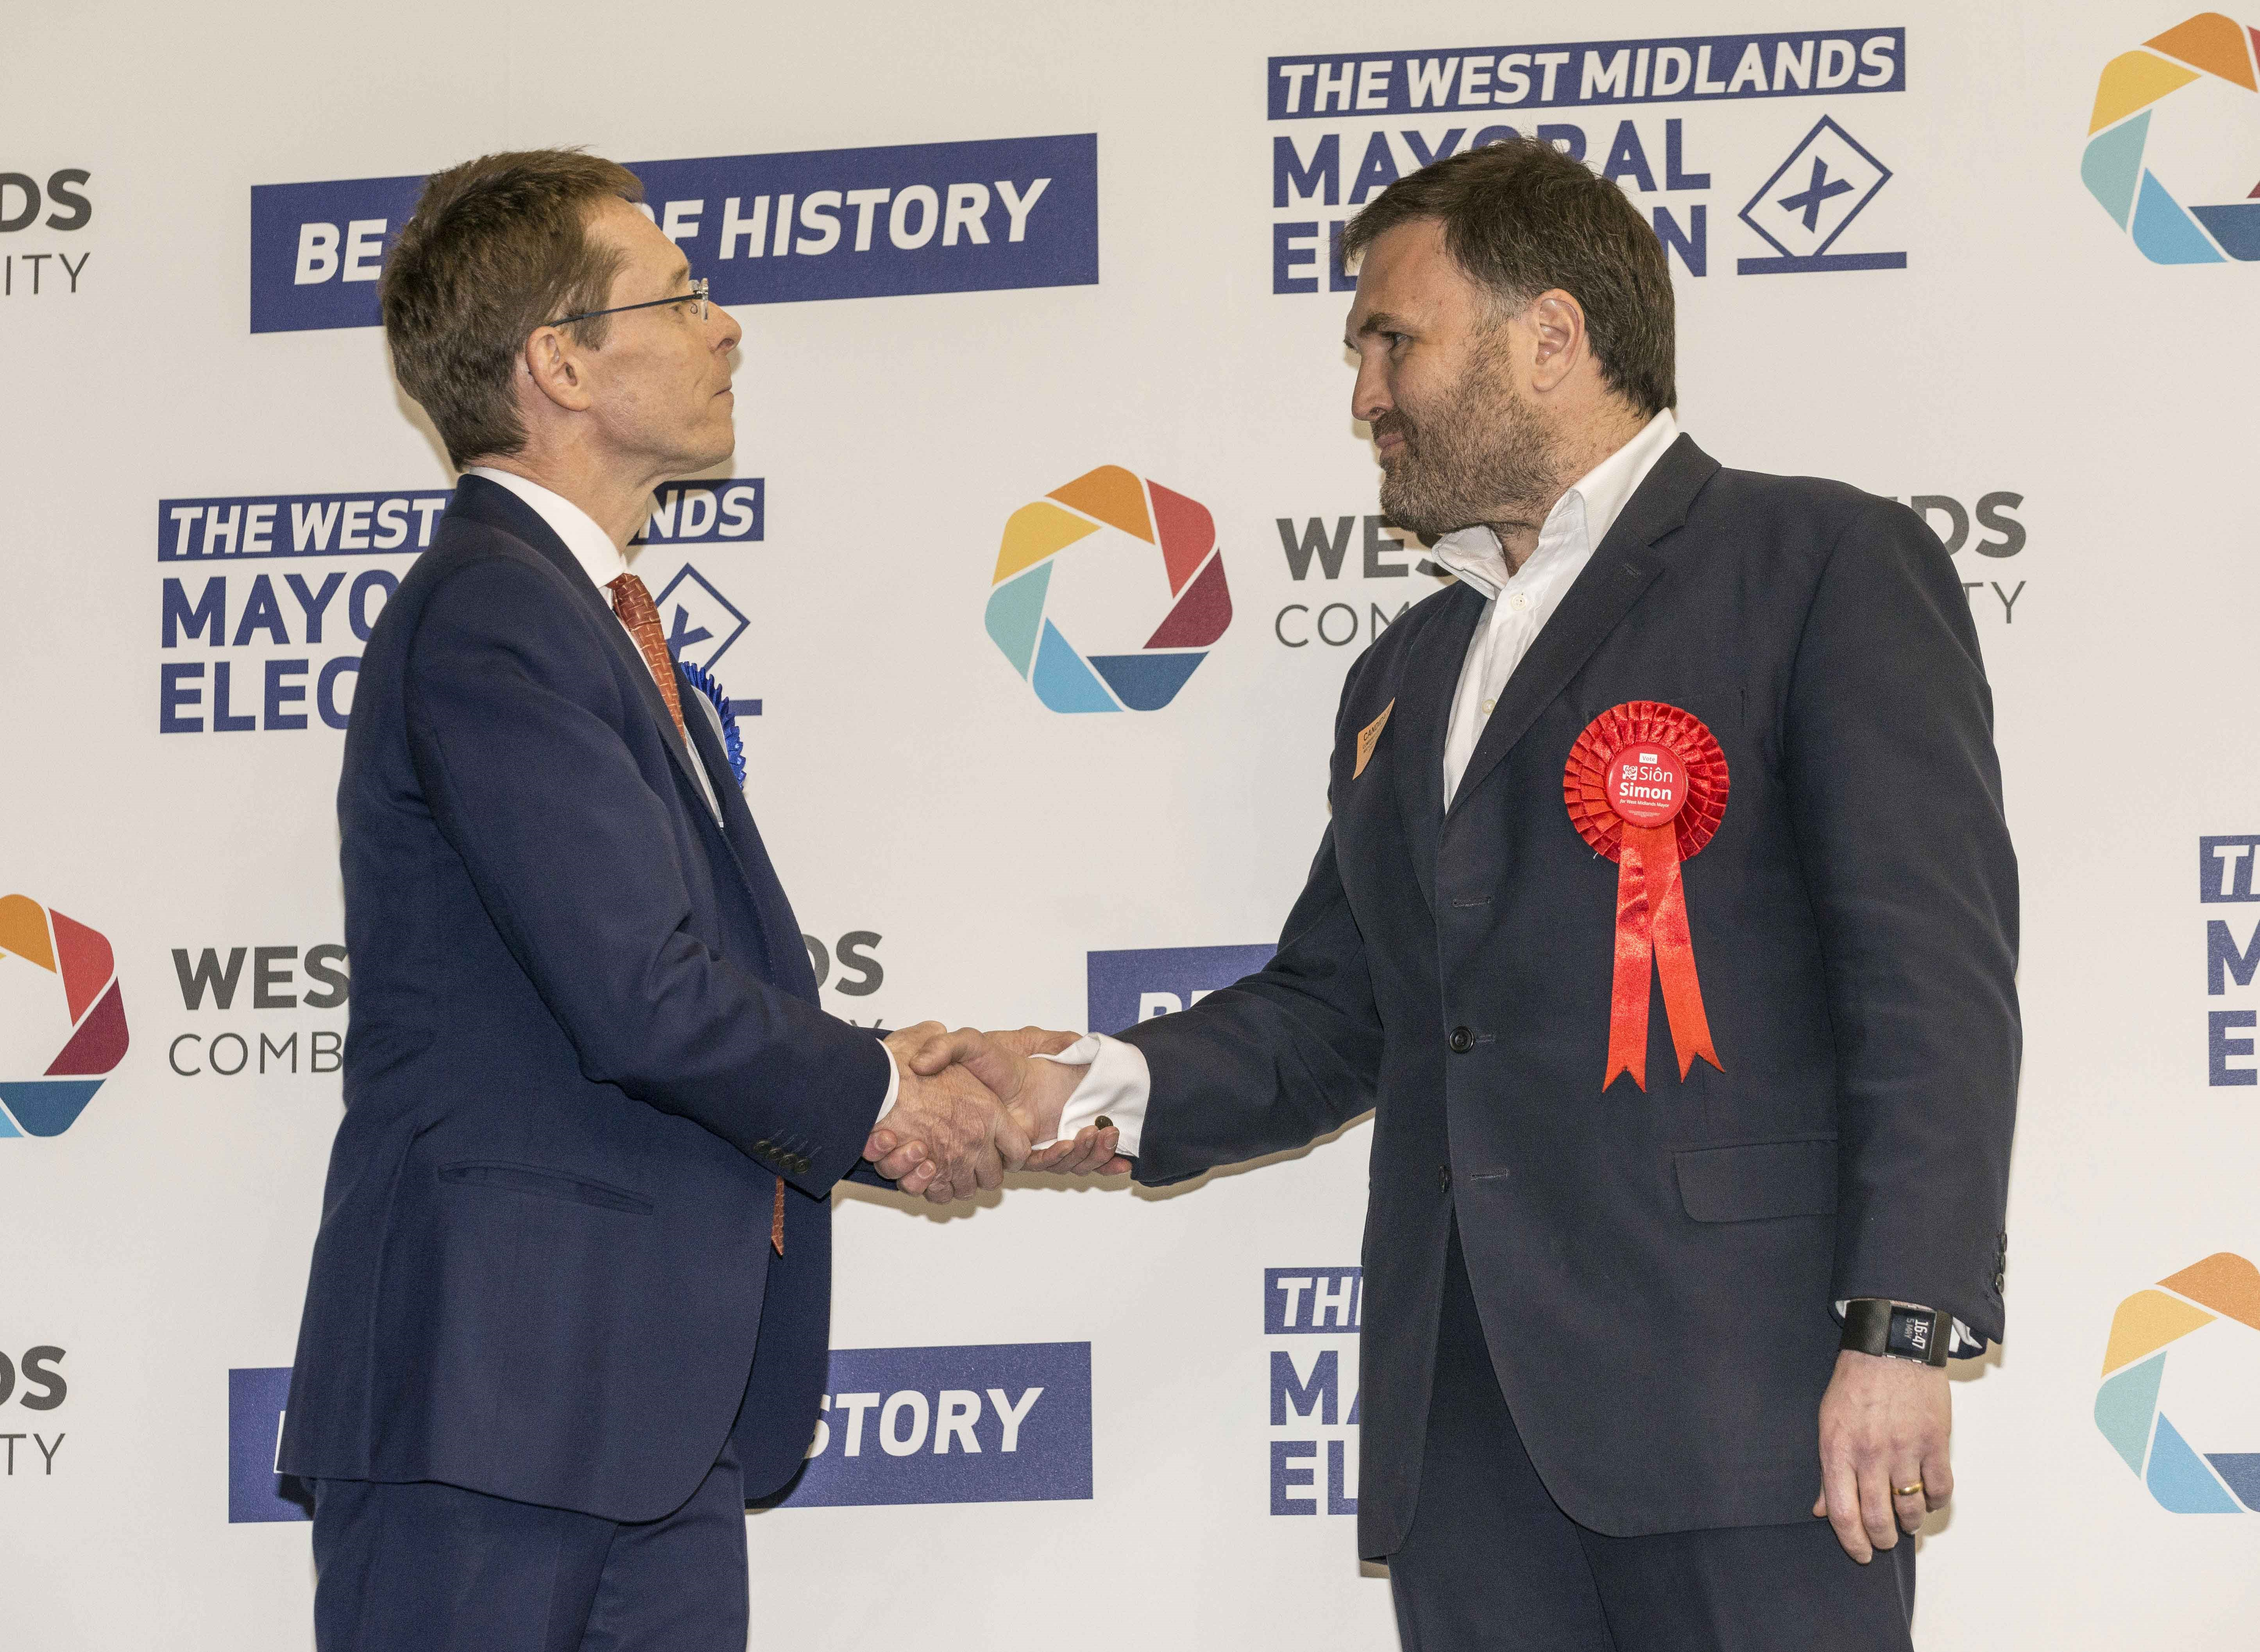 Historic vote sees Andy Street elected first West Midlands Mayor